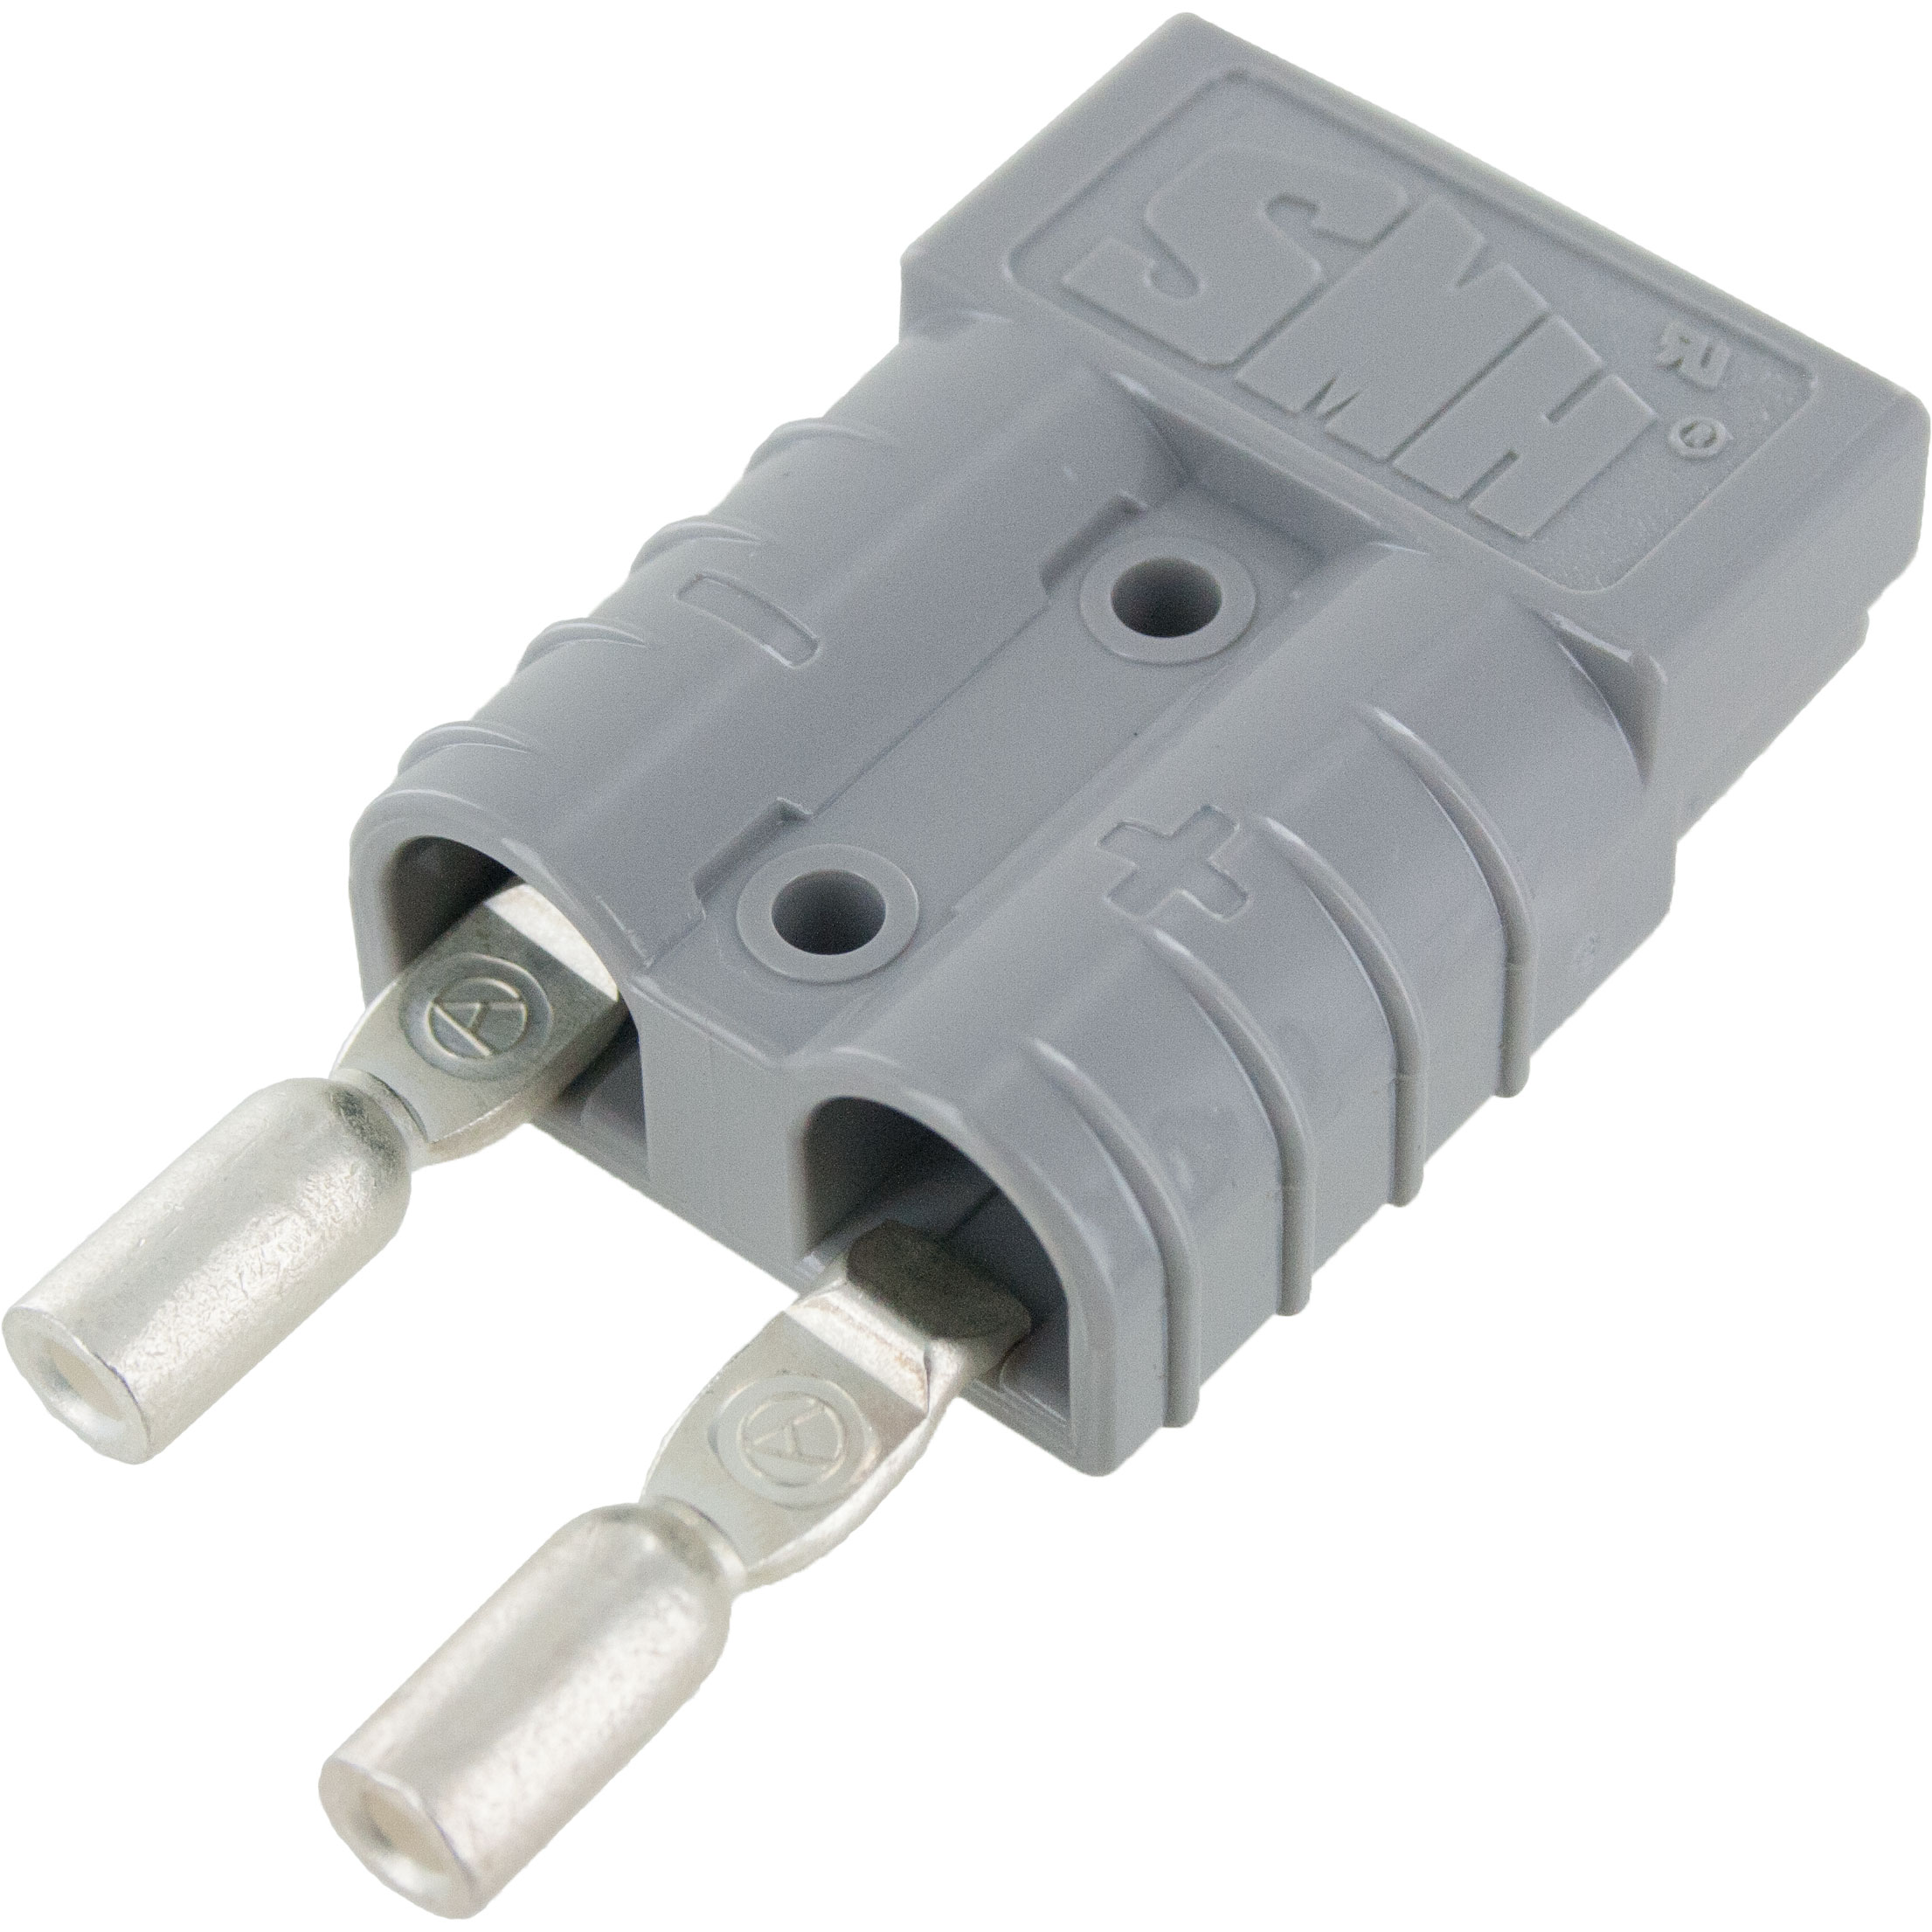 Battery Connector Kit 12-10 Awg 50 Amp Grey | ElecDirect